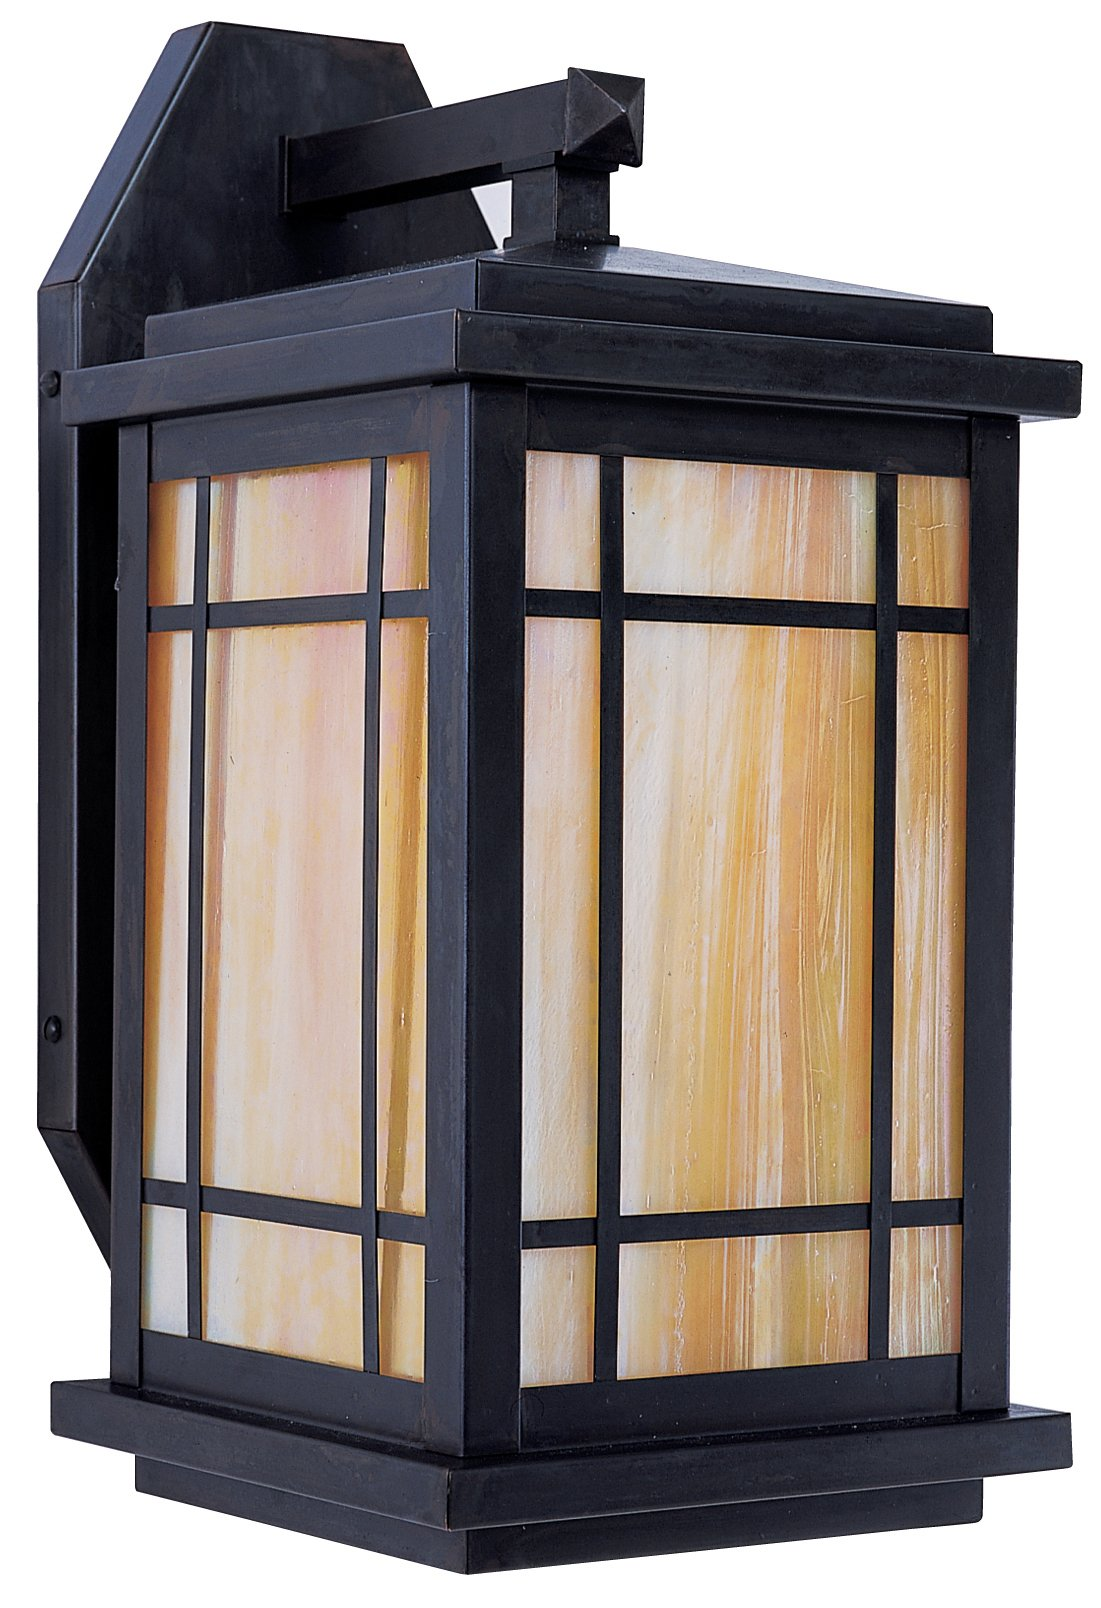 Arroyo Craftsman AVB-8GW-BZ Avenue Wall Bracket with Gold/White Iridescent Glass, 8'', Bronze Finish by Arroyo Craftsman